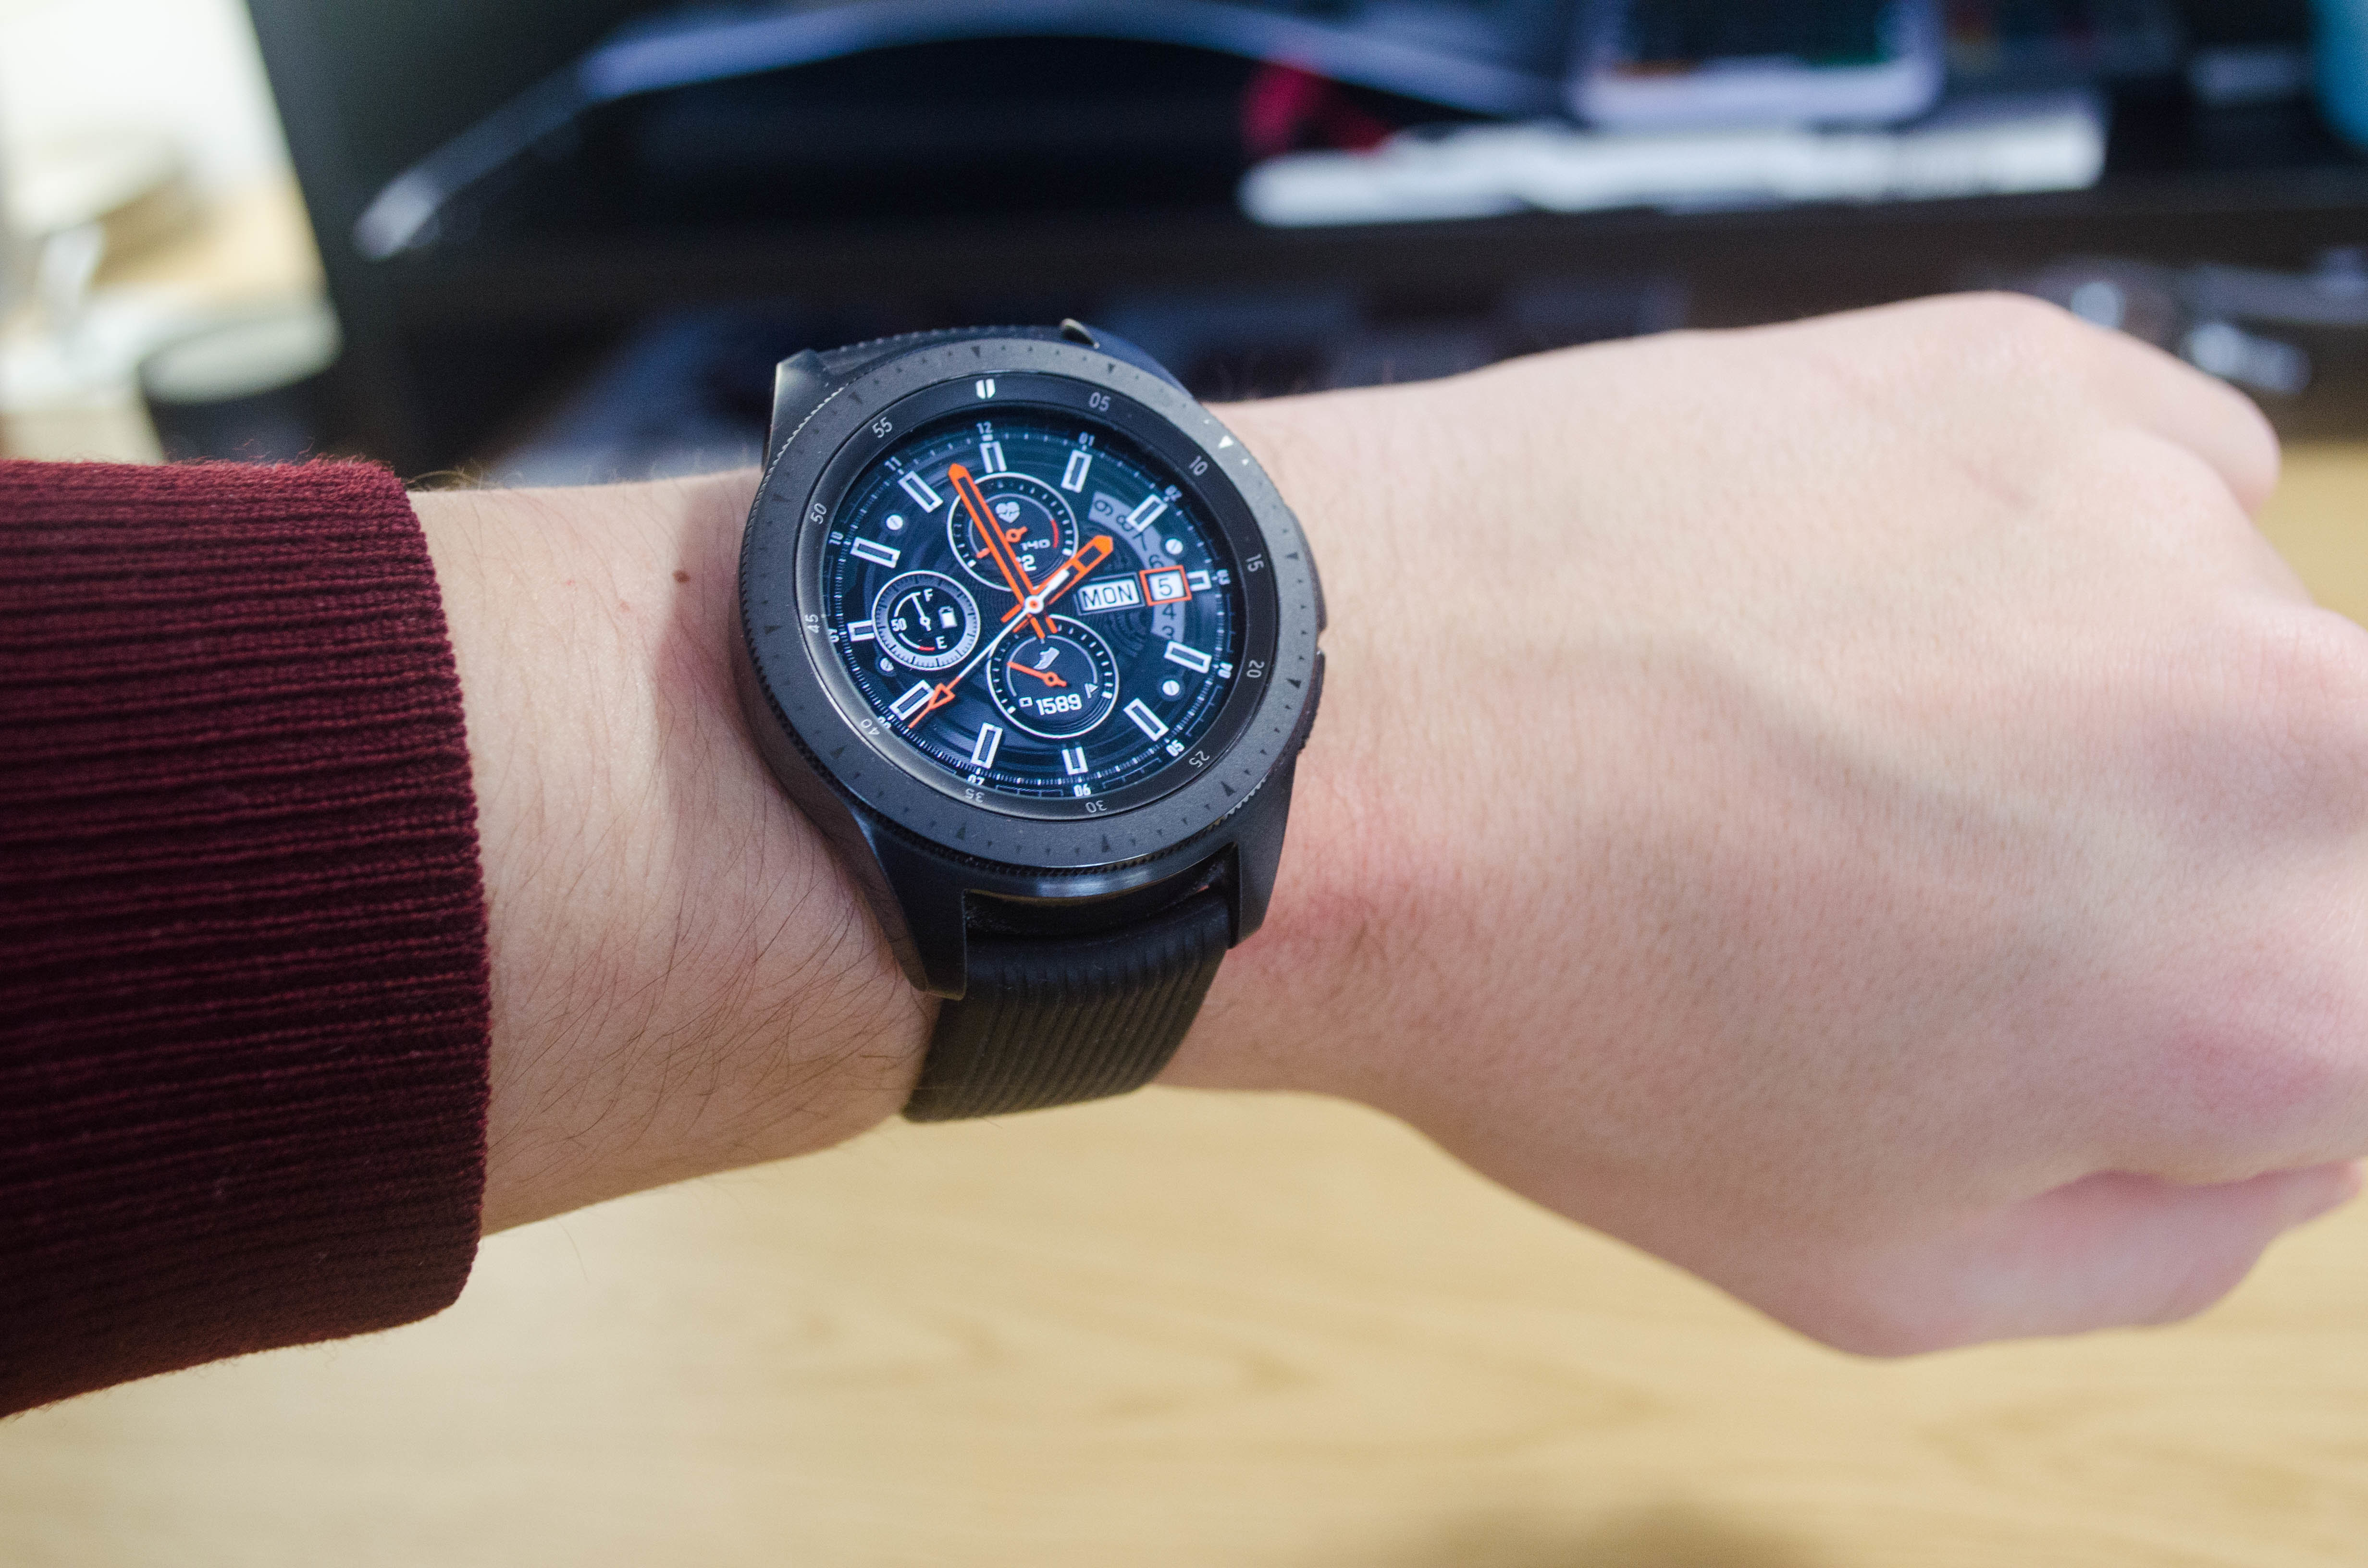 Samsung Galaxy Watch review: A timely update with lots to like (apart from Bixby)